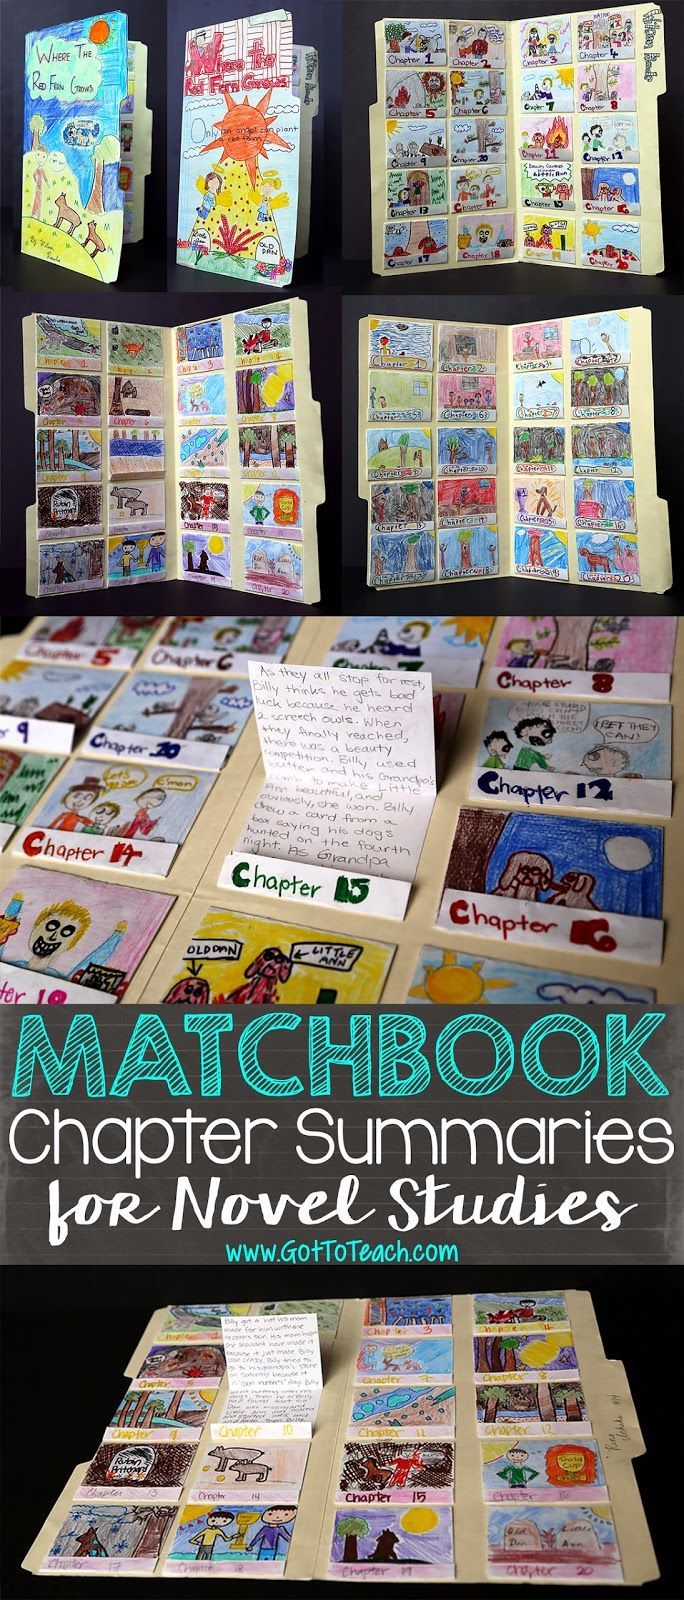 """Here's a super simple and fun project that you can have your students complete during your next novel study. I call them """"Matchbook Summaries,"""" for lack of a better term, and they require little prep and materials. The look really cool when they are completed and make a perfect piece to add to your open"""